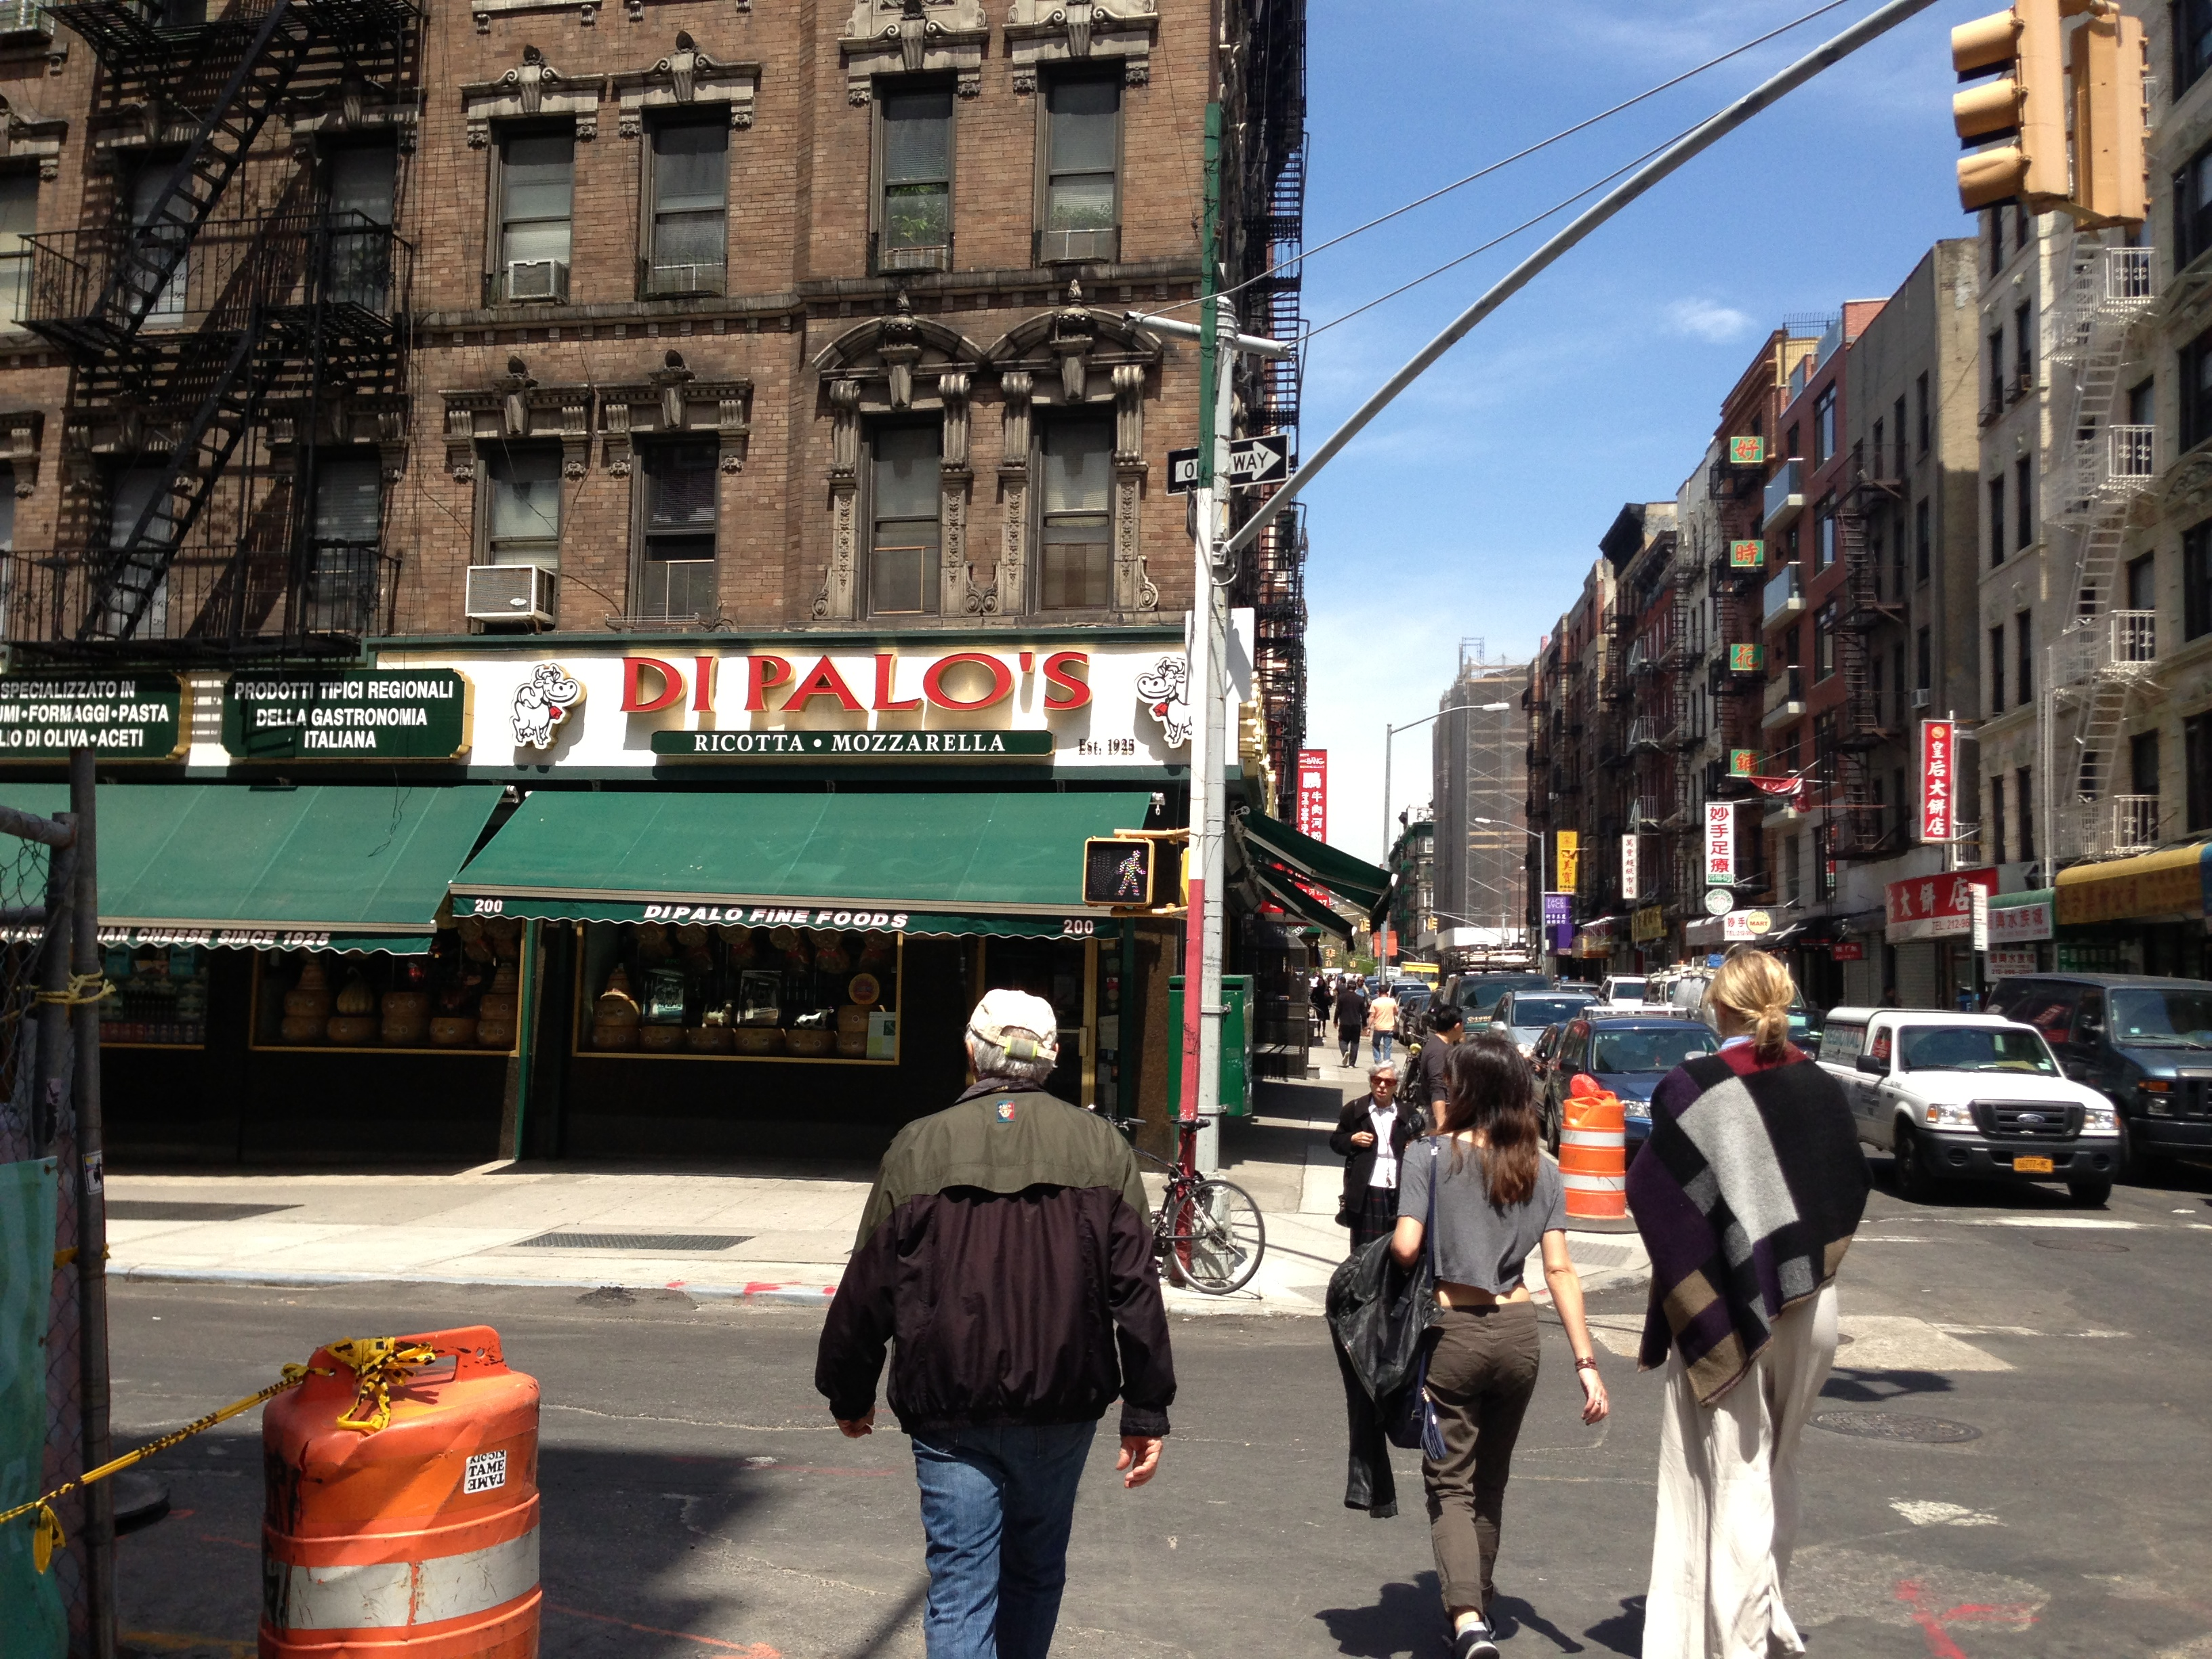 Transition from Chinatown to Little Italy